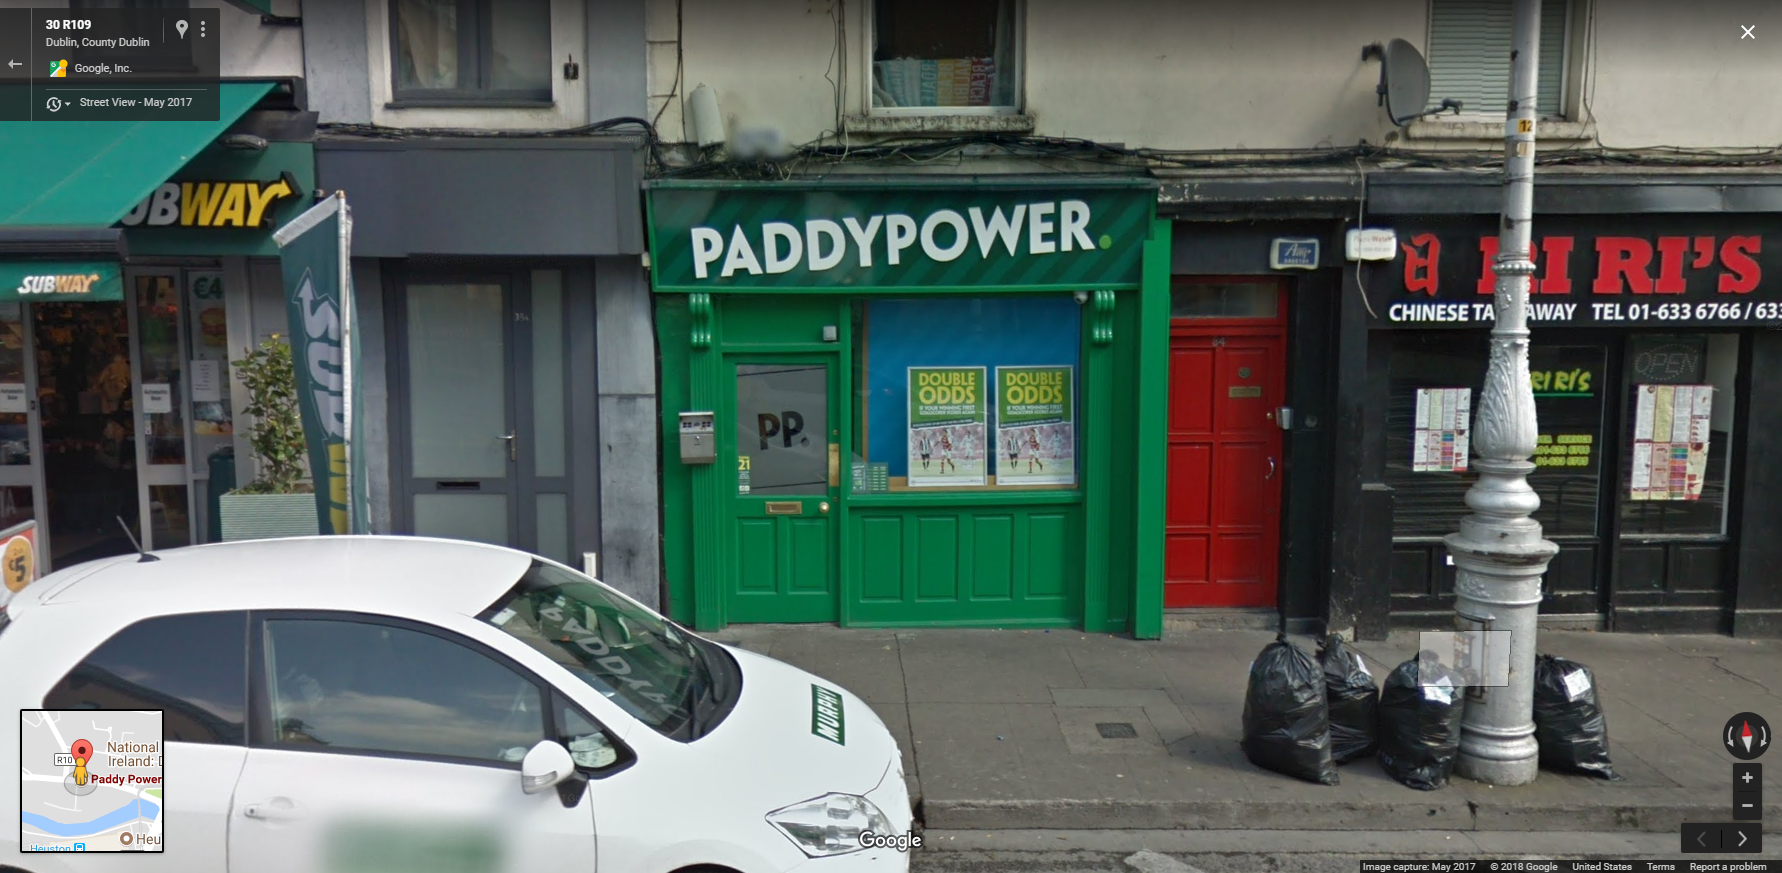 A modest PaddyPower shop in Dublin sits between a Subway and Chinese take-out. Don't expect to see betting shops like this in the US, even if sports betting becomes legal, thanks to restrictions and cronyism from state lawmakers.